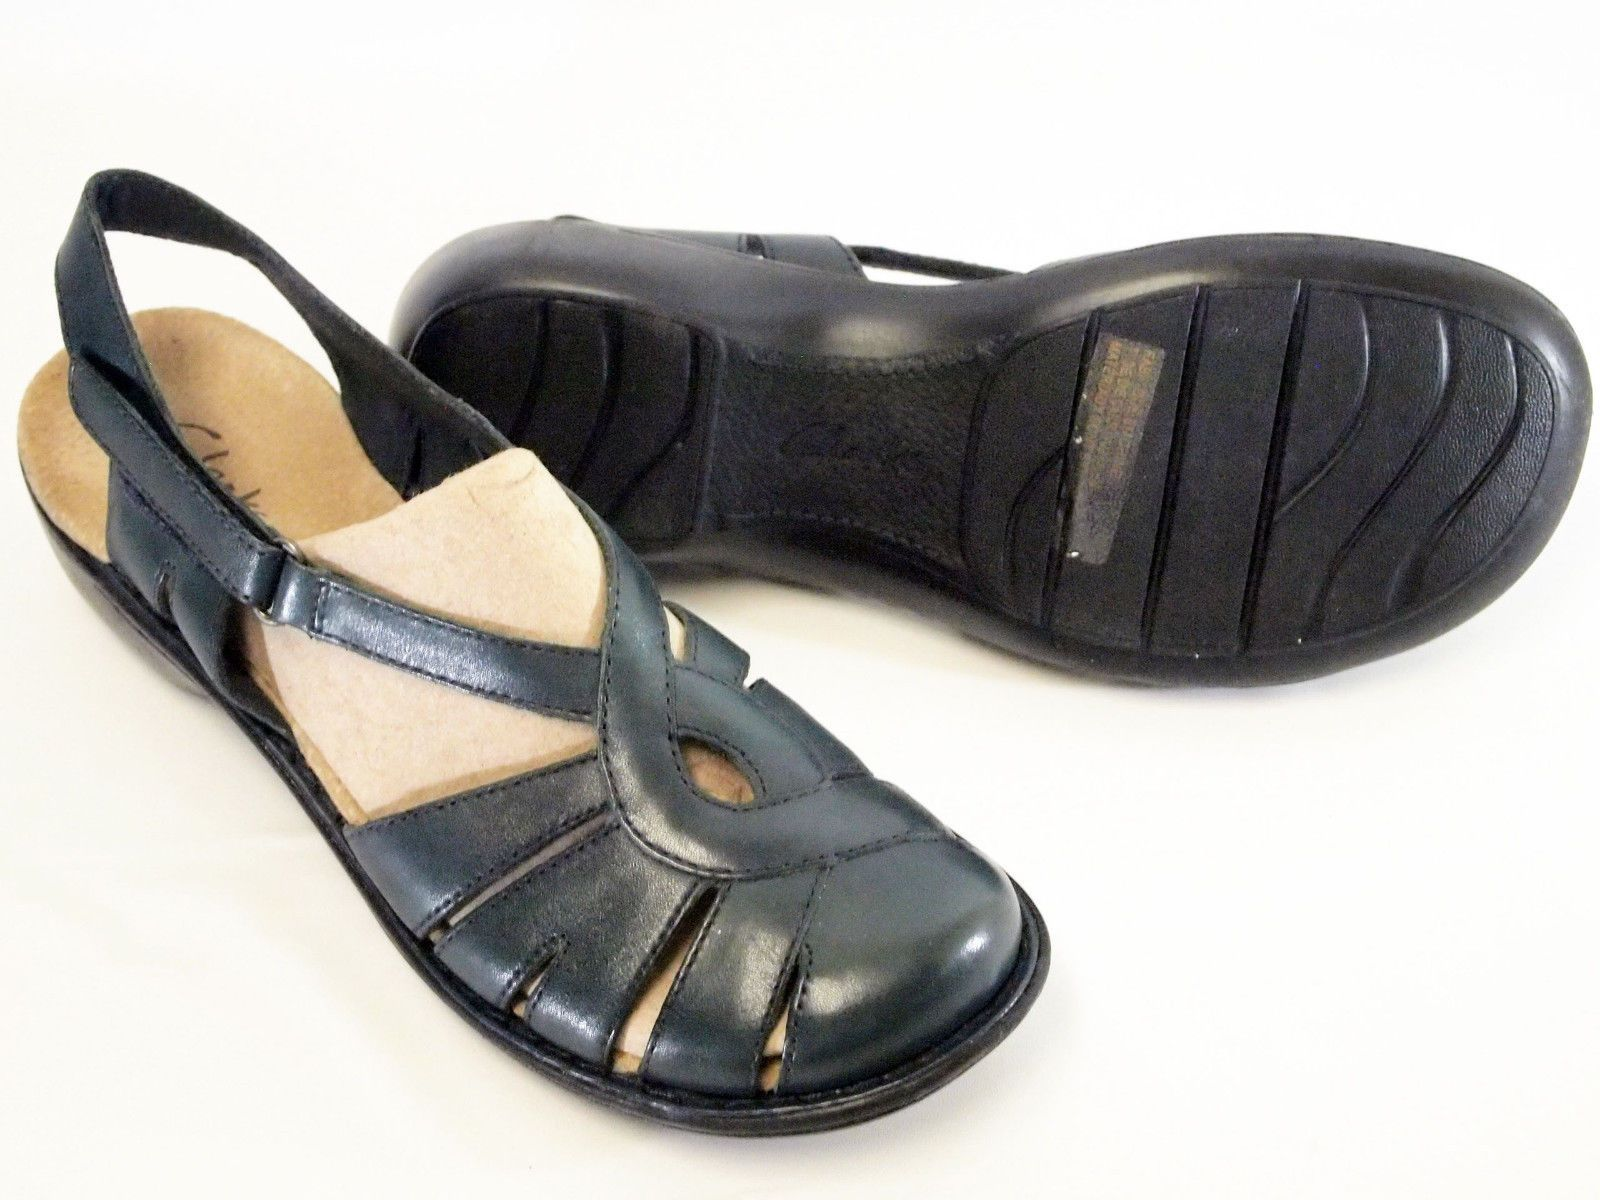 cf2a08adcc4e CLARKS BENDABLES MARBLE BLUE SLINGBACK CLOSED TOE SANDALS 37374 Womens Size  9.5